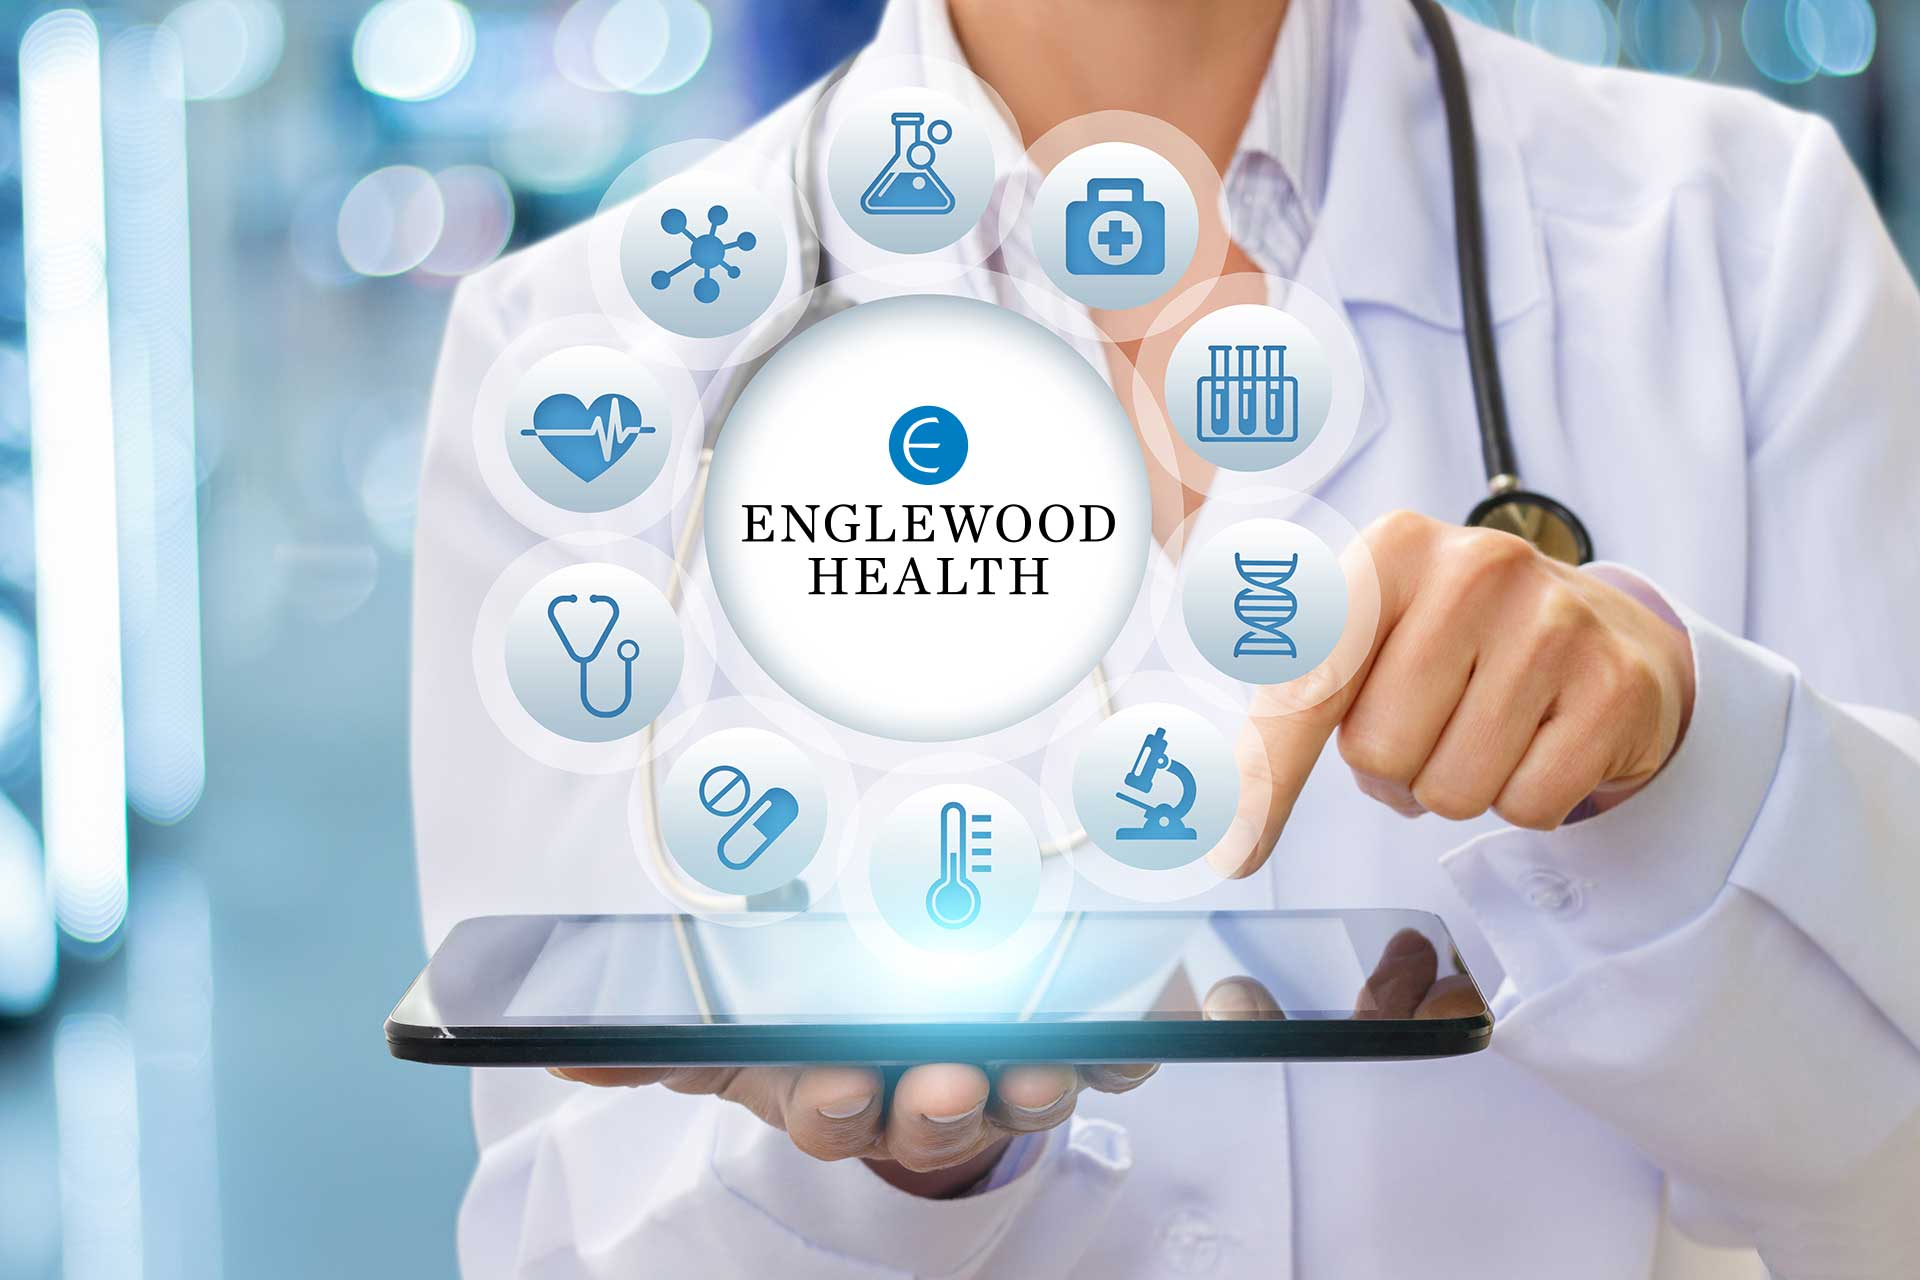 the future of Englewood Health